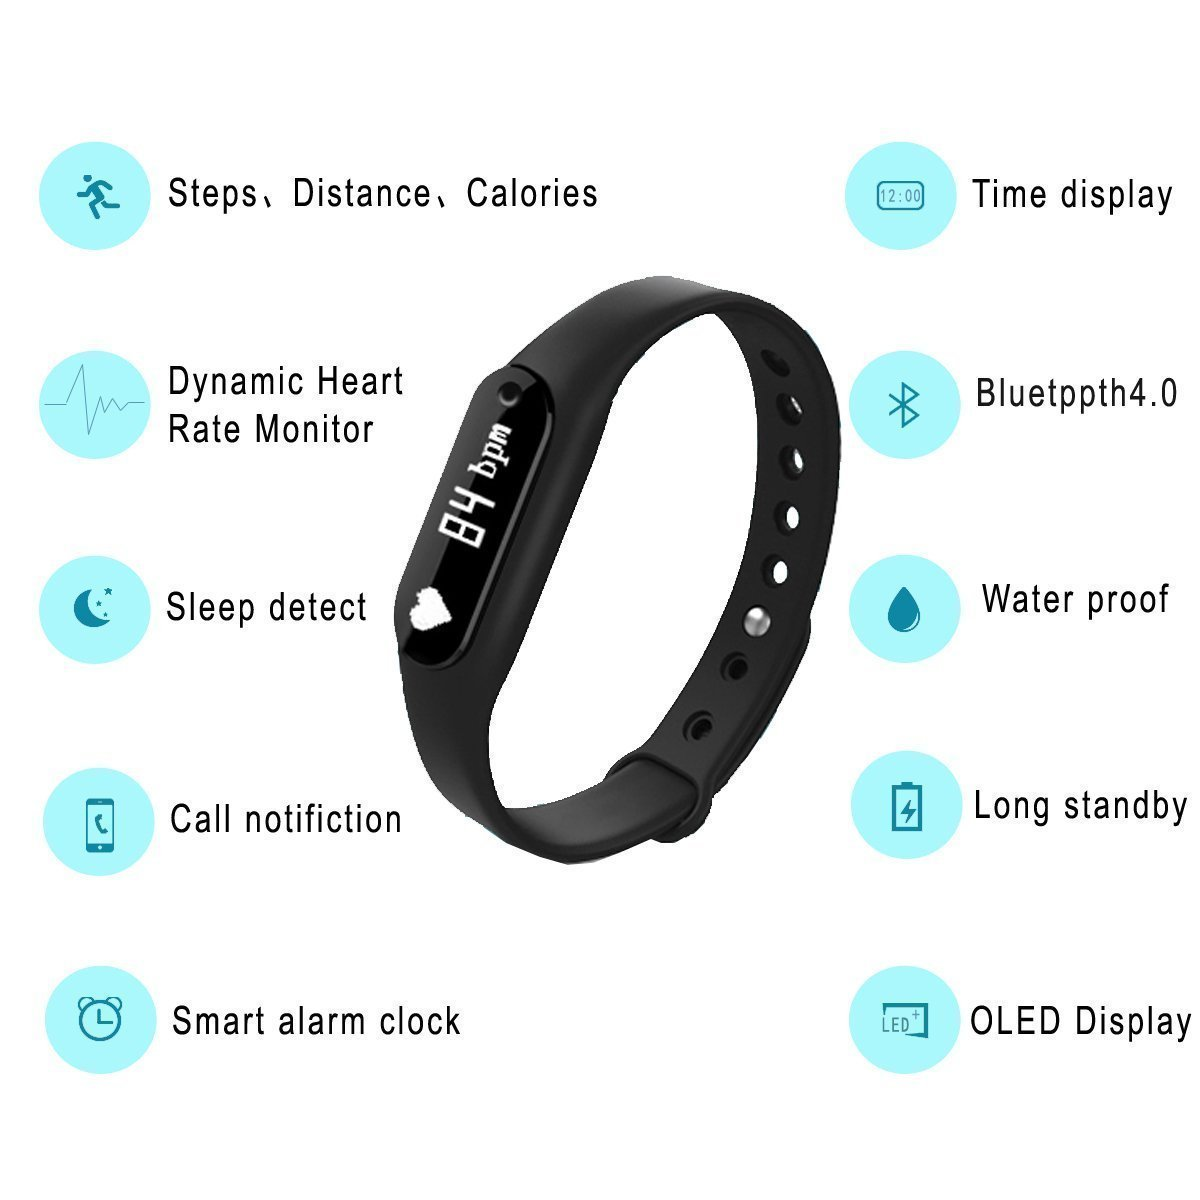 Mi3 Compatible Fitness Tracker Oled Screen Display Smart Wristband M2 Bluetooth Bracelet Mi Band 2 Look Heart Rate Monitor With Sleep Pedometer Calories Distance Calculator